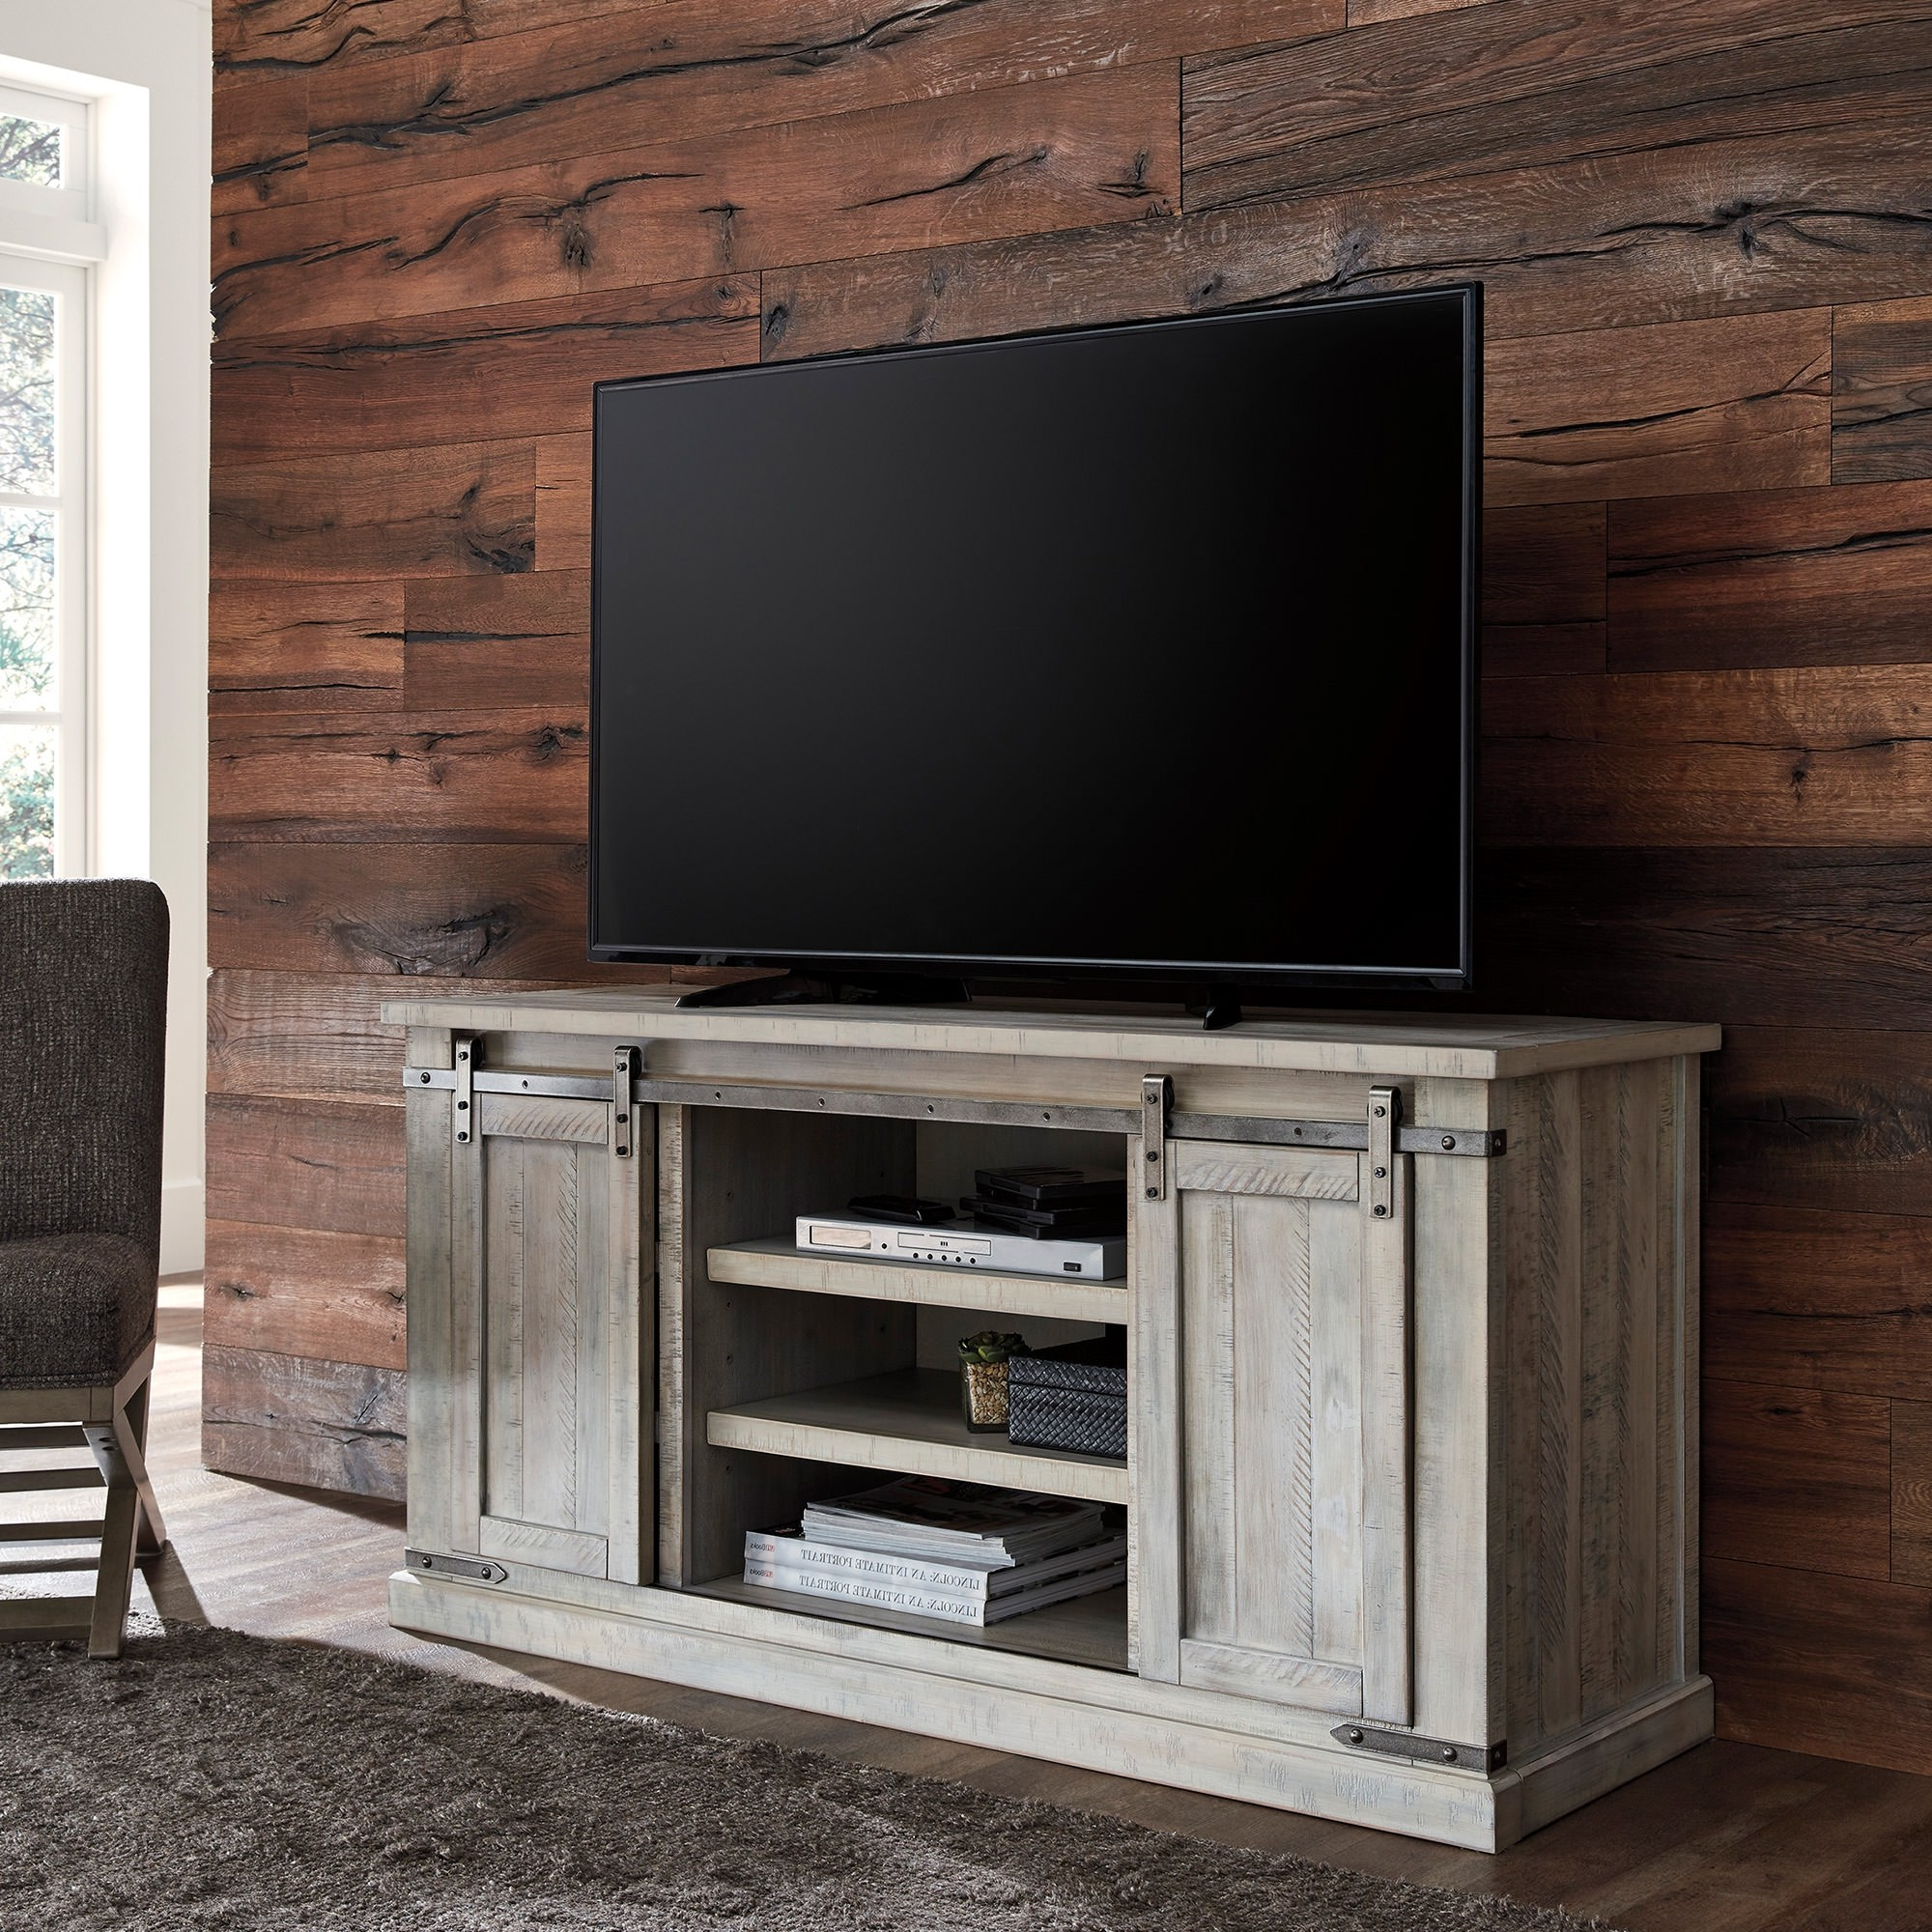 """Carynhurst Large 60 Inch Tv Stand – Bernie & Phyl's In Millen Tv Stands For Tvs Up To 60"""" (View 6 of 20)"""